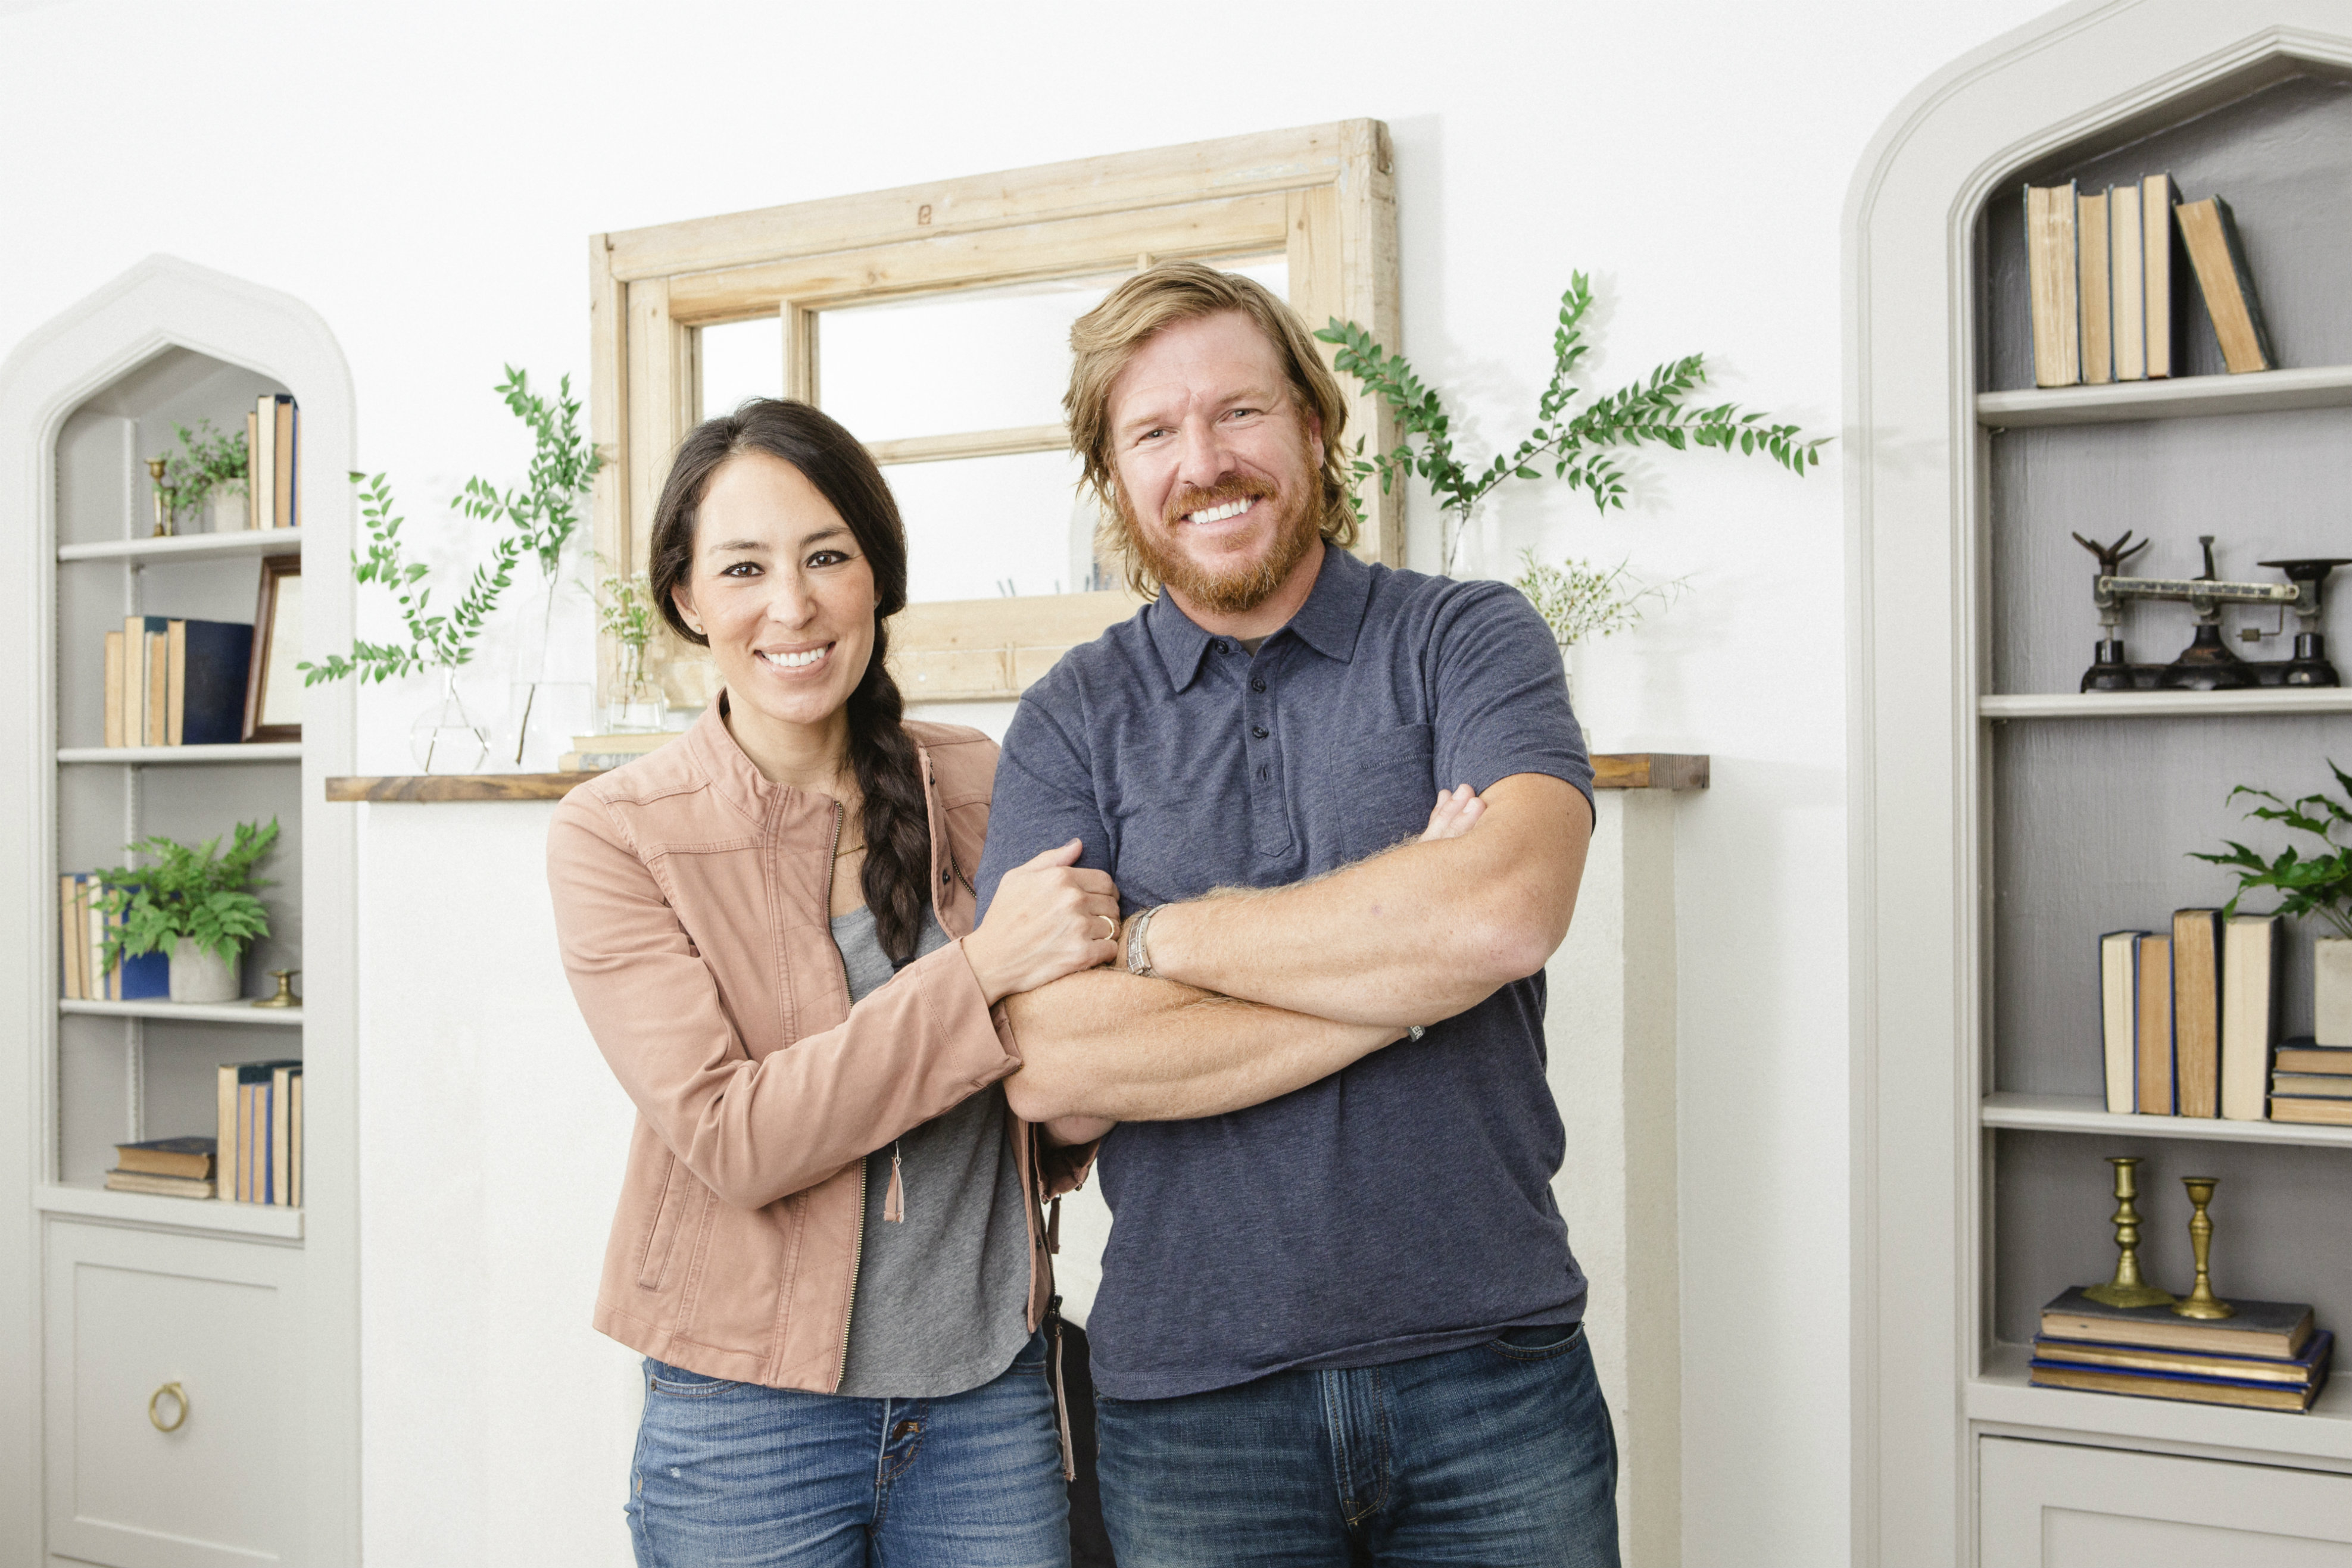 hgtv stars chip and joanna gaines return for season five of fixer upper on tuesday november. Black Bedroom Furniture Sets. Home Design Ideas